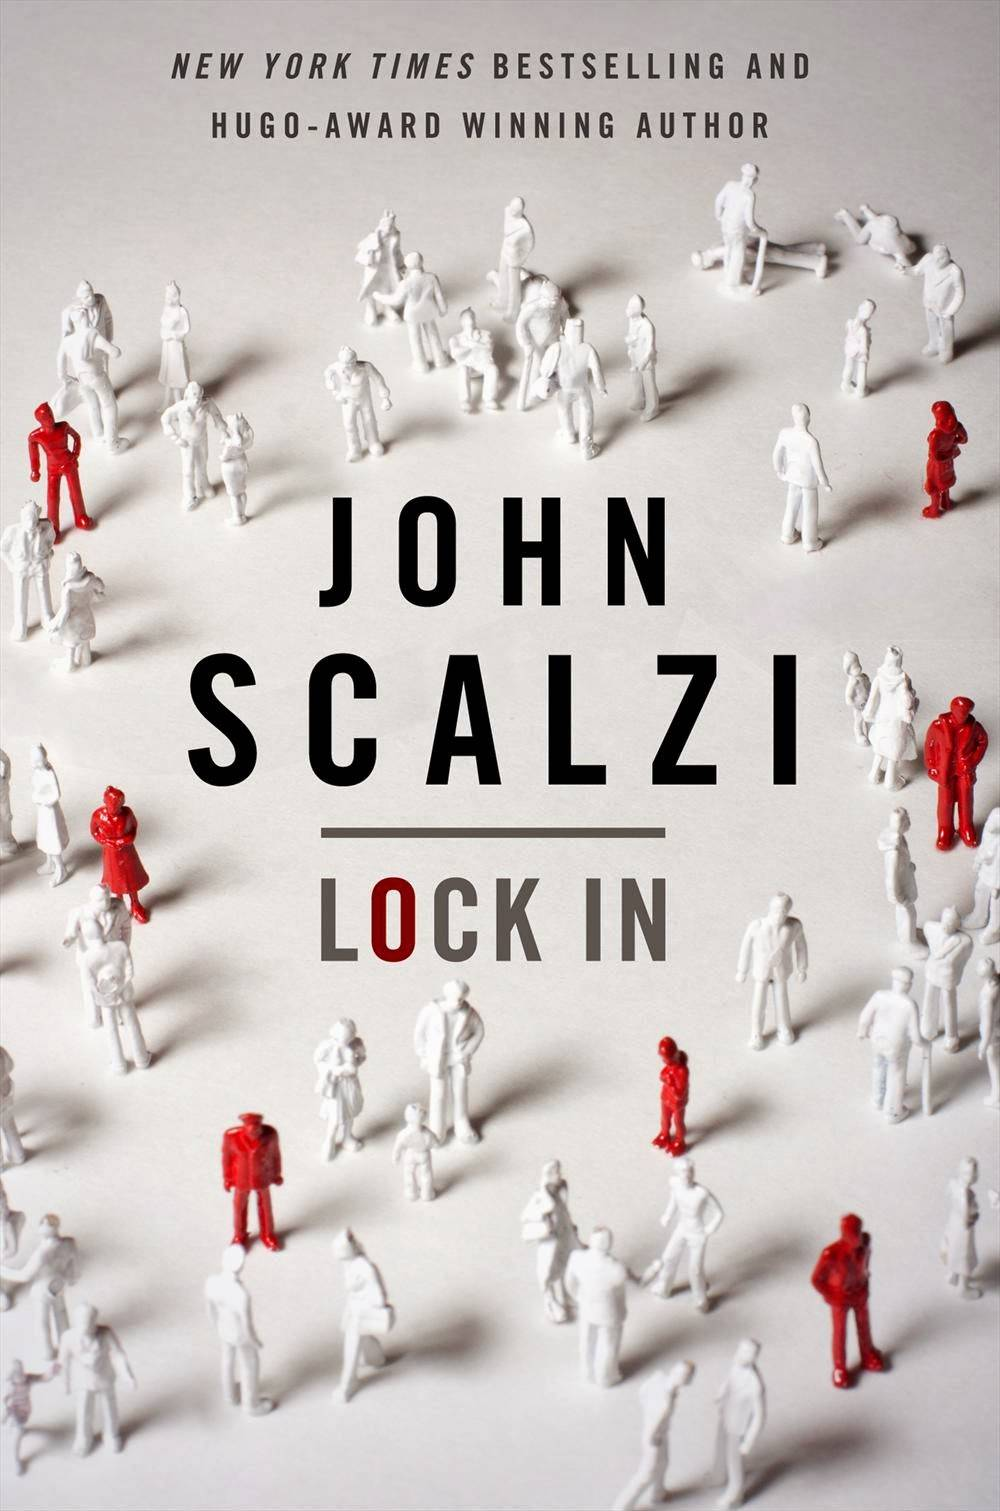 LockInScalzi